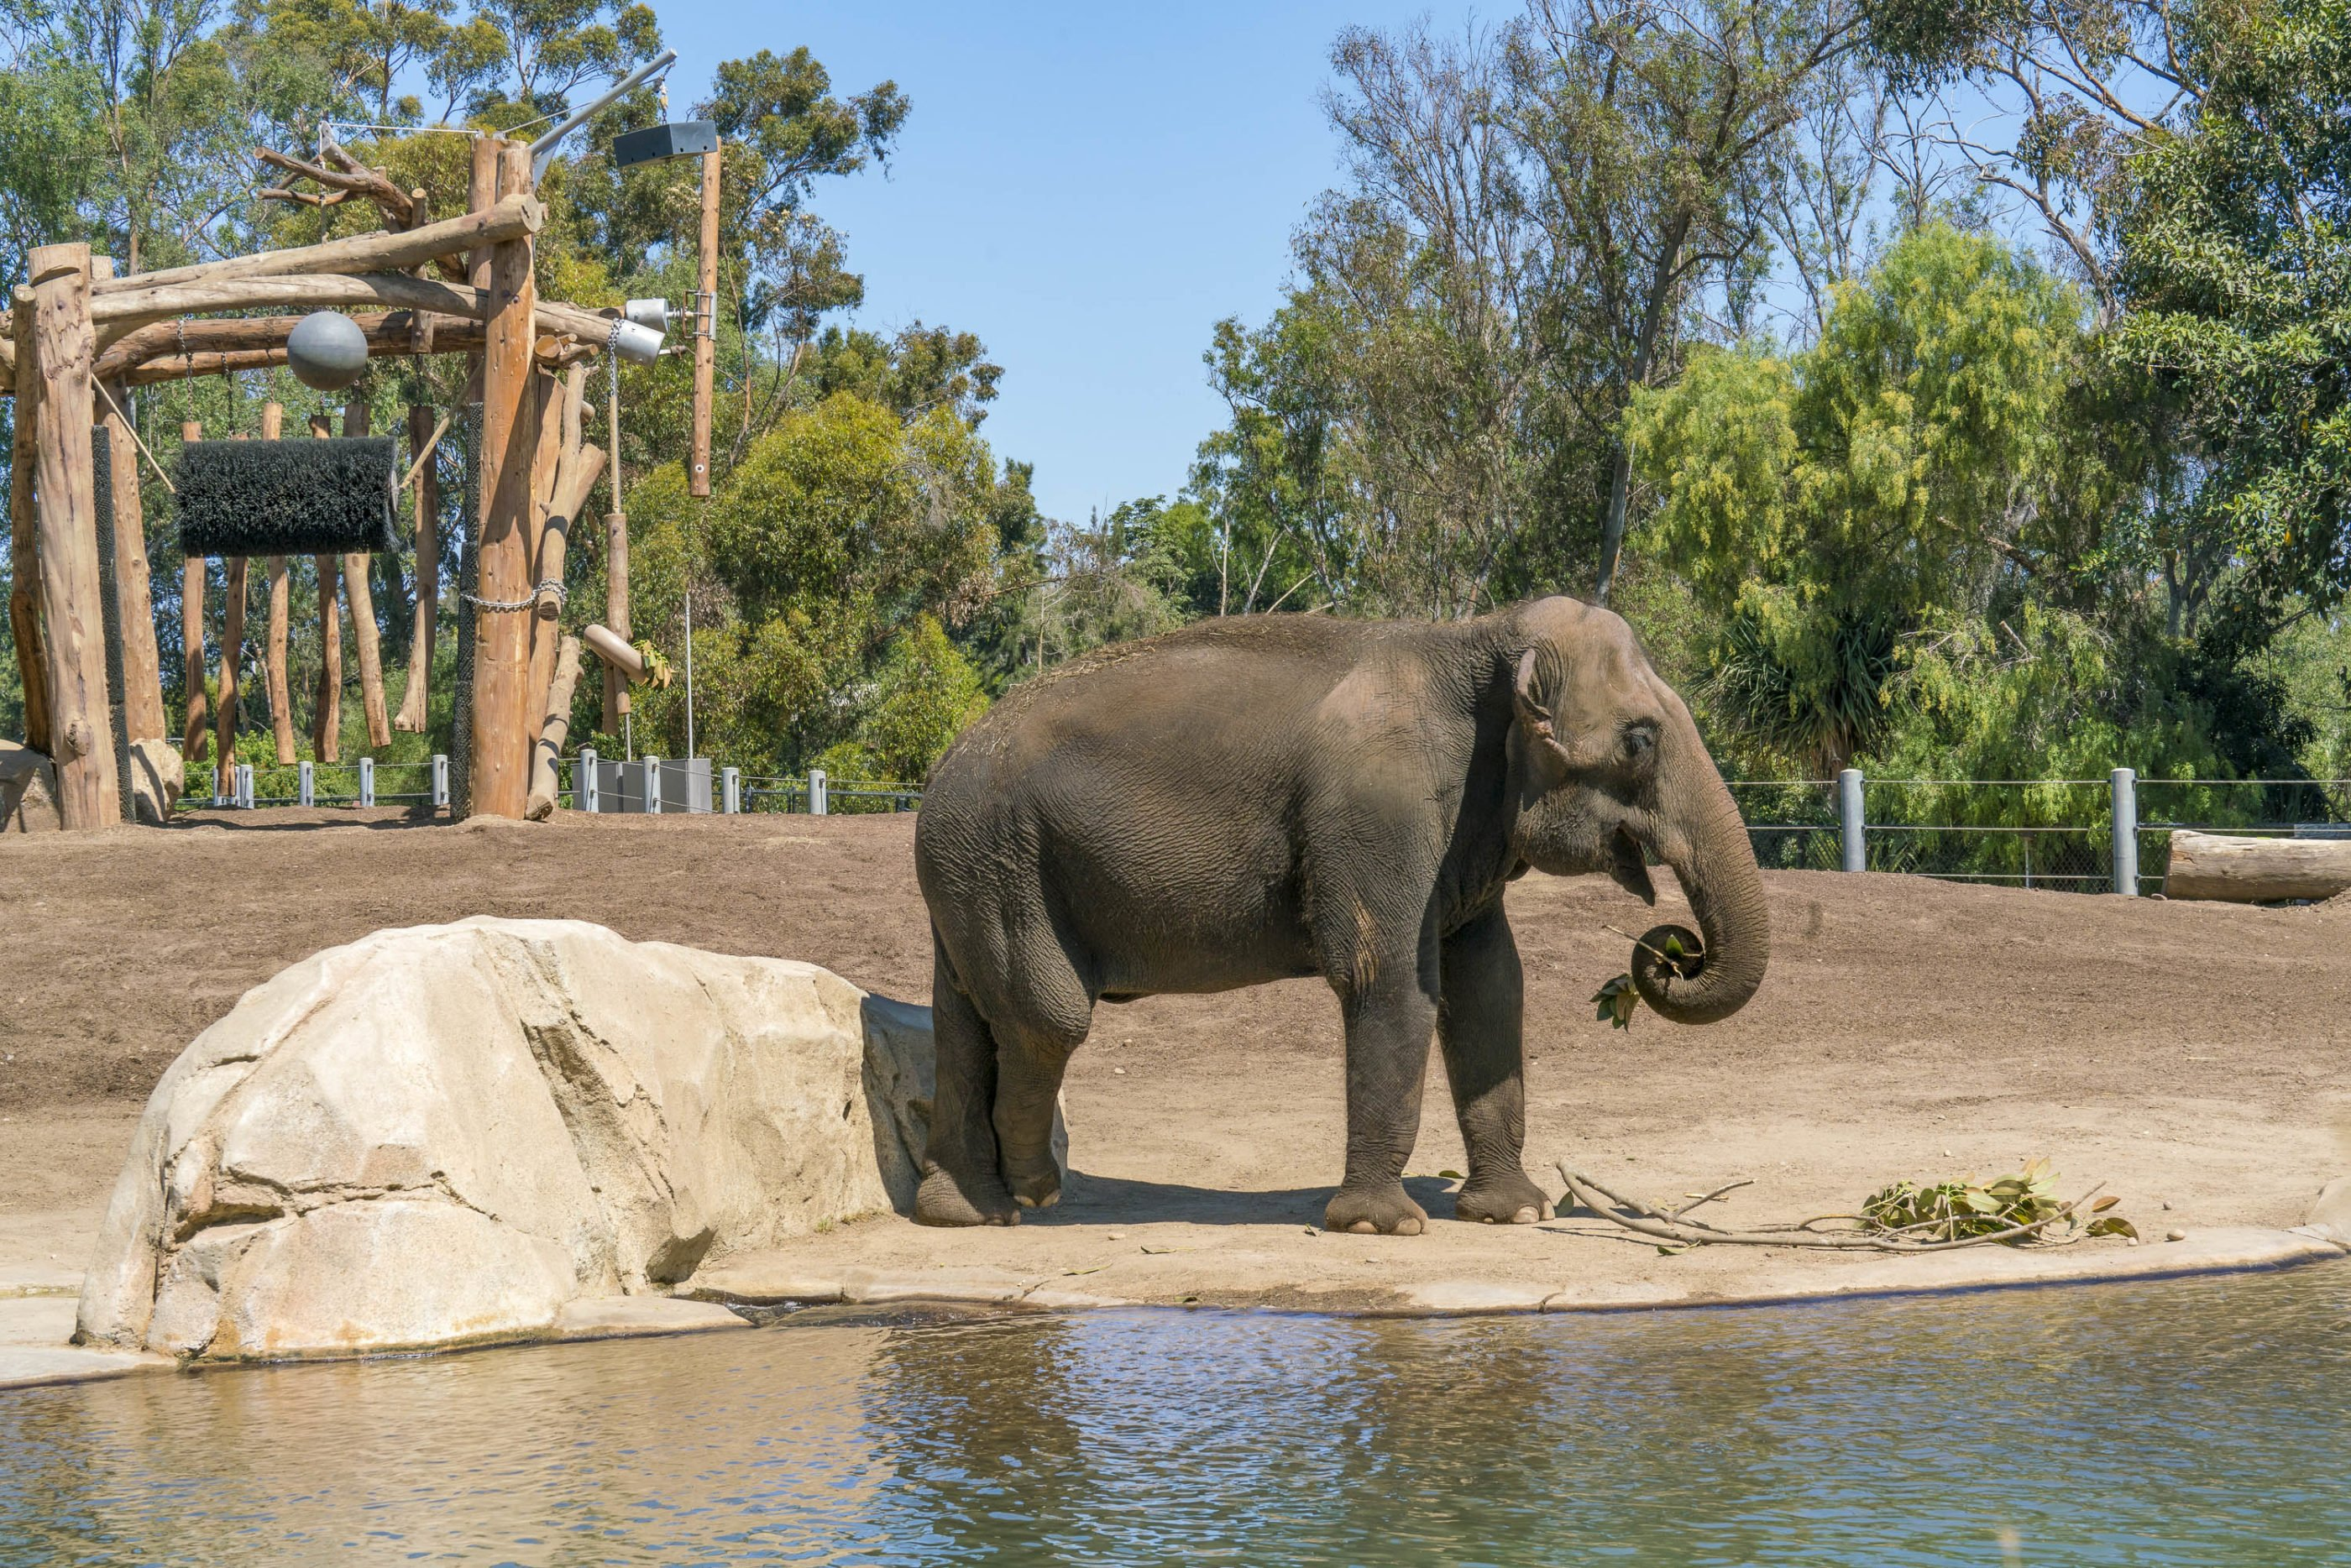 An elephant eating plants at the San Diego Zoo